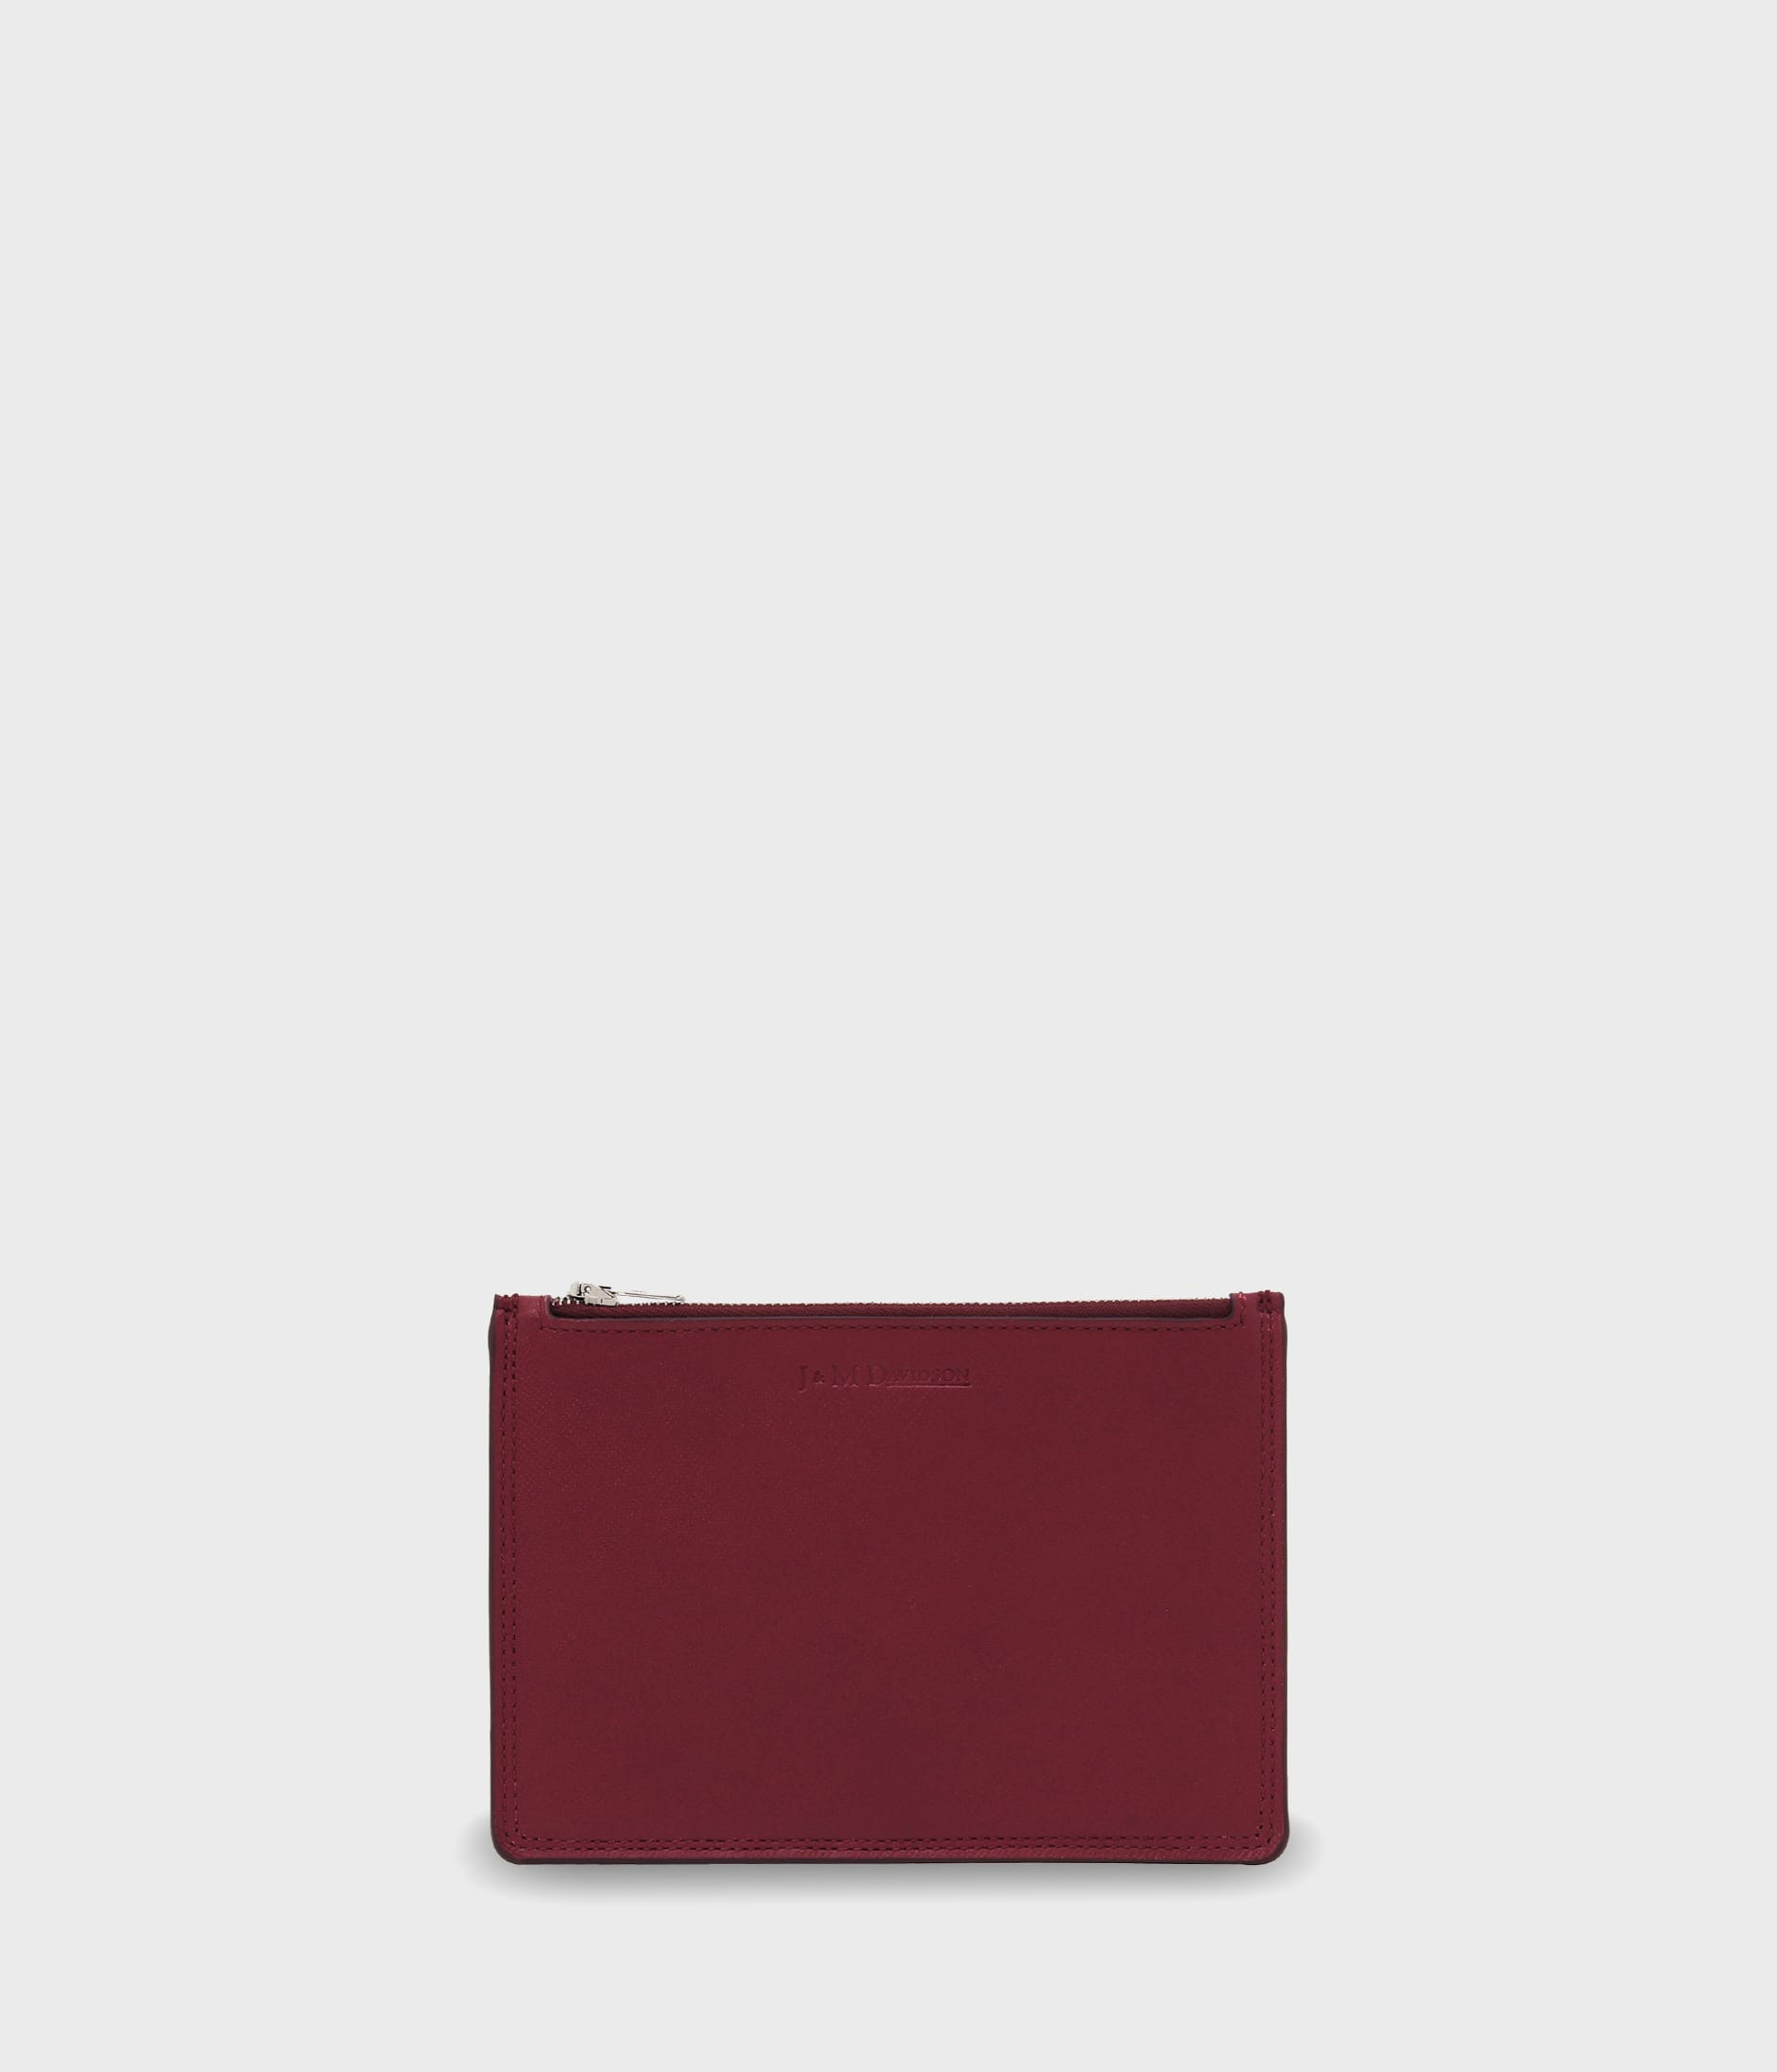 ZIP POUCH CARD HOLDER 詳細画像 BURGUNDY 1